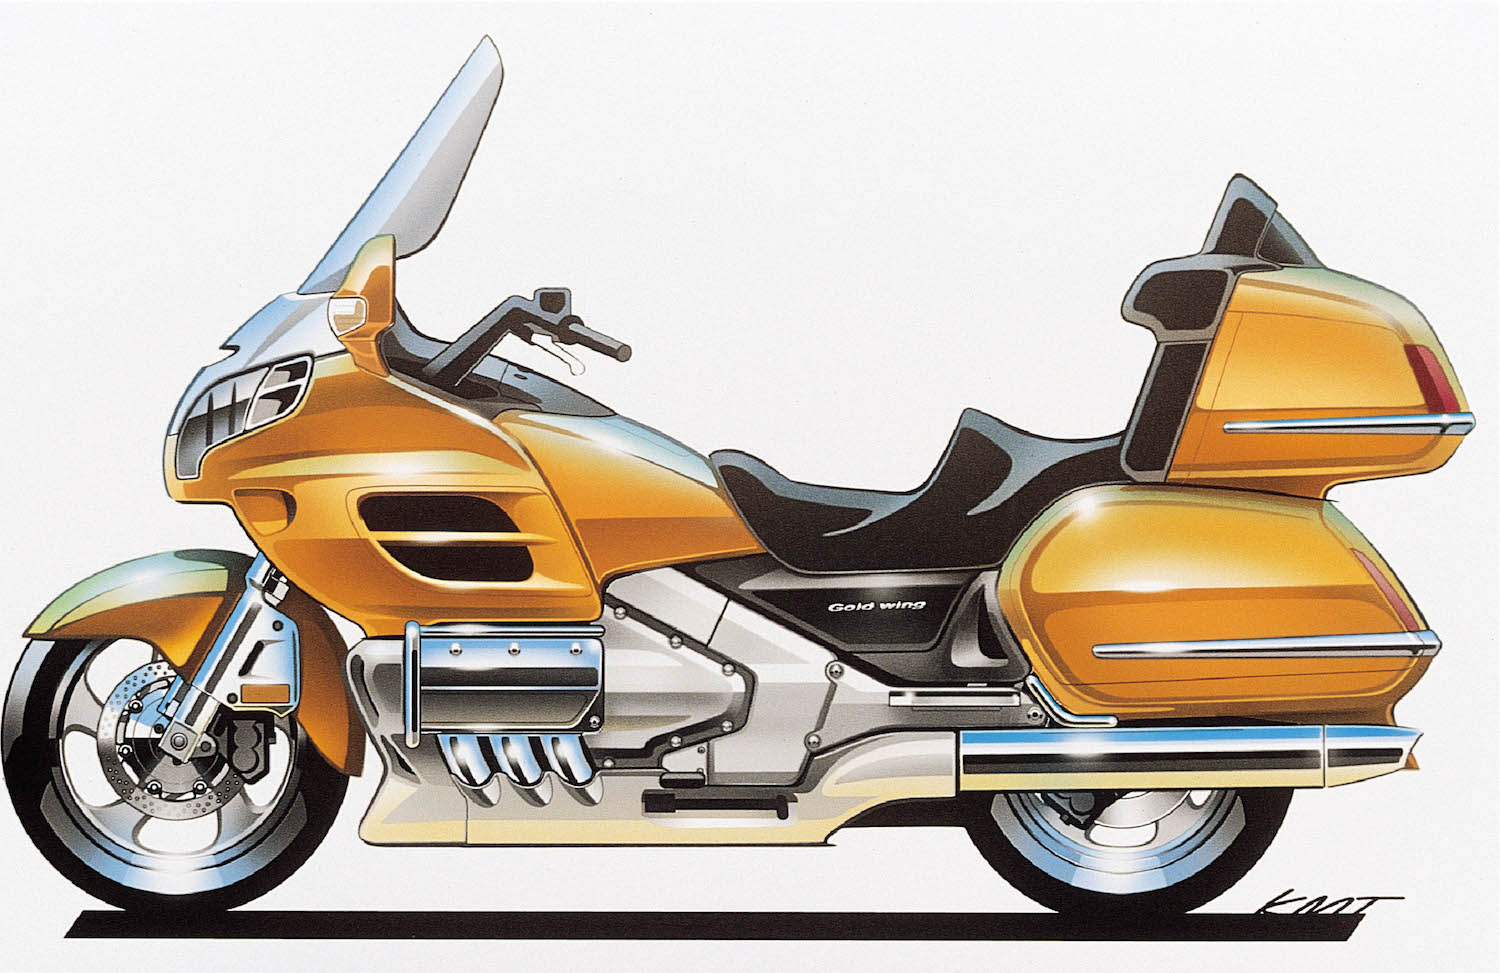 2001 Honda Gold Wing final sketch.